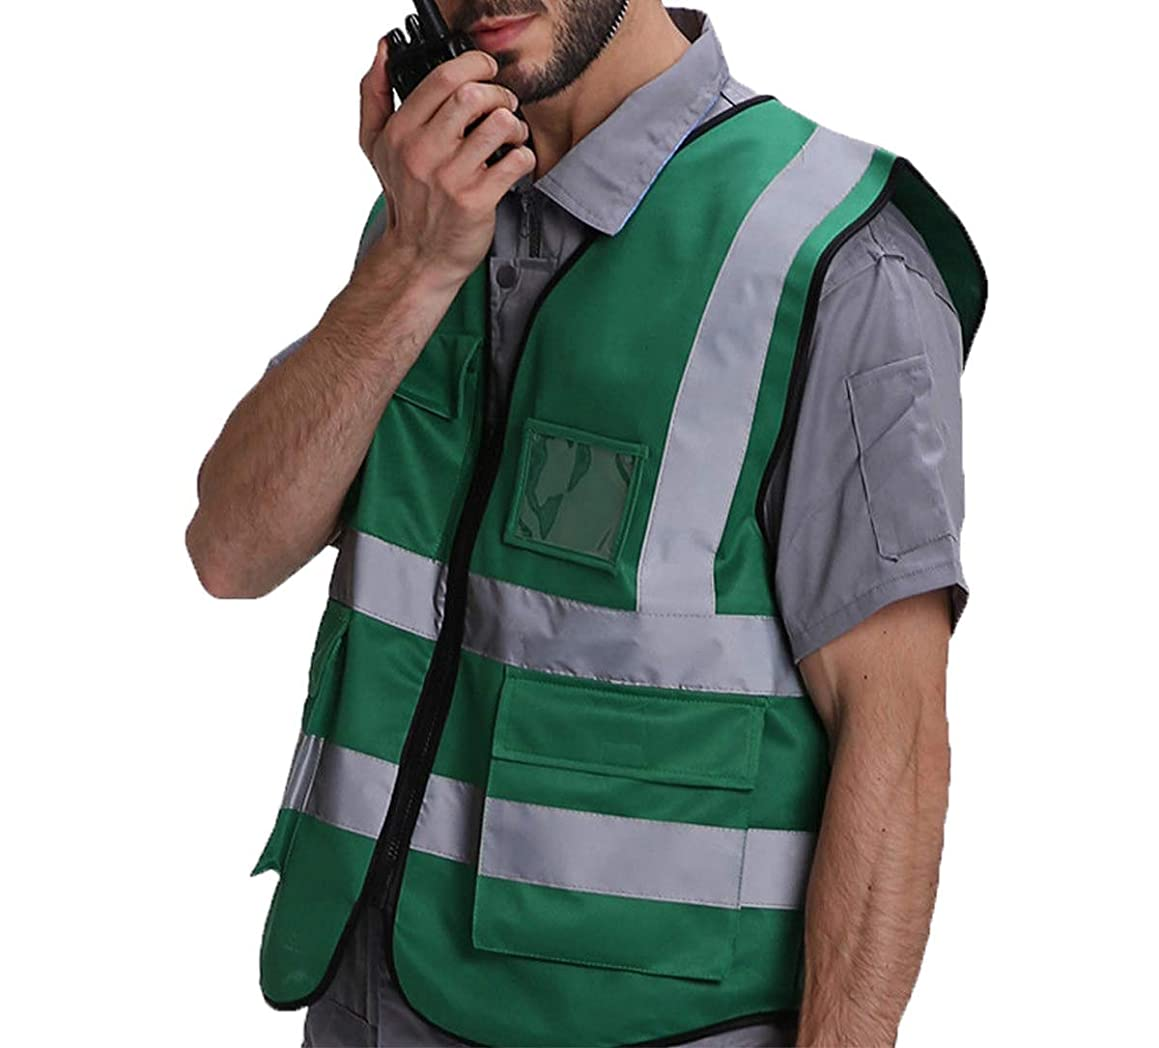 High Safety Security Visibility Zipper Reflective Vest Construction Traffic/Warehouse Safety Protection Waistcoat (TAG XXL, Dark green)